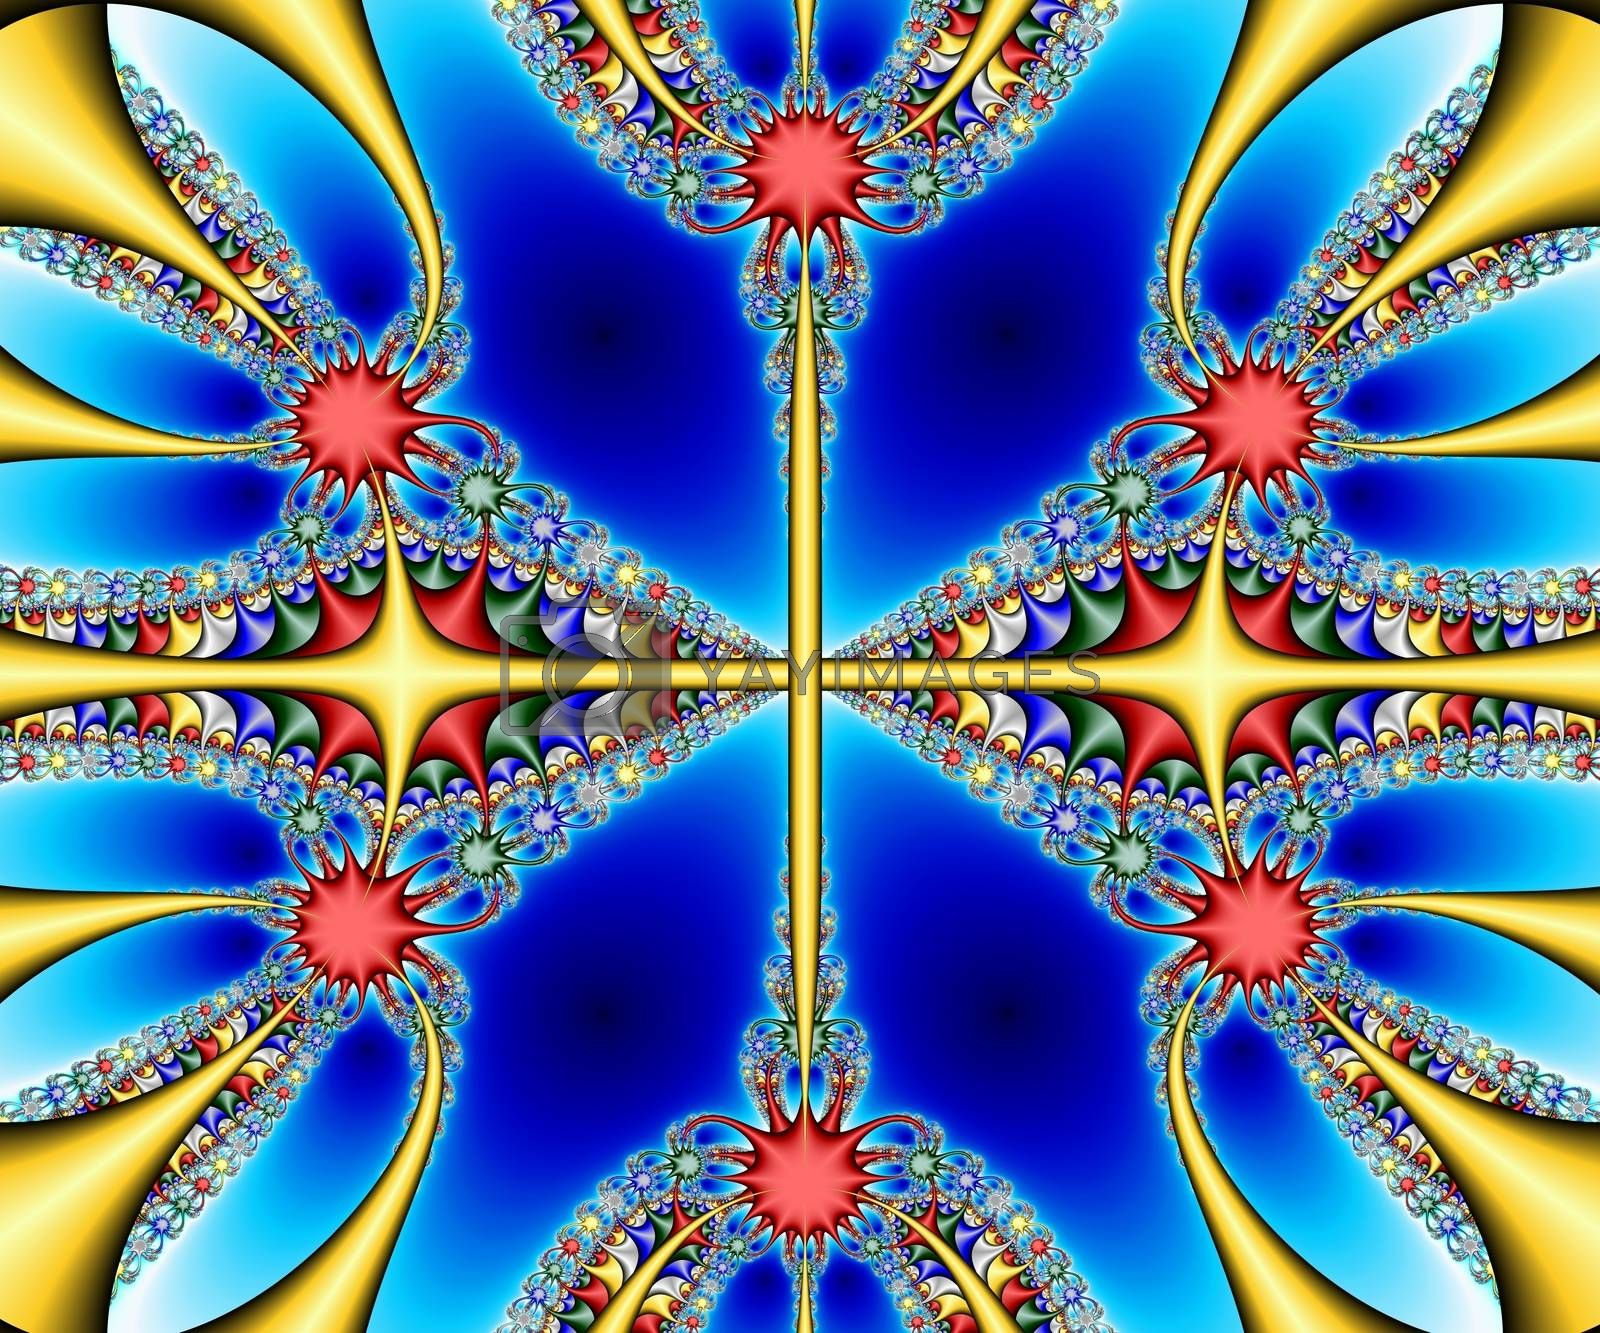 Computer generated abstract colorful fractal artwork by stocklady